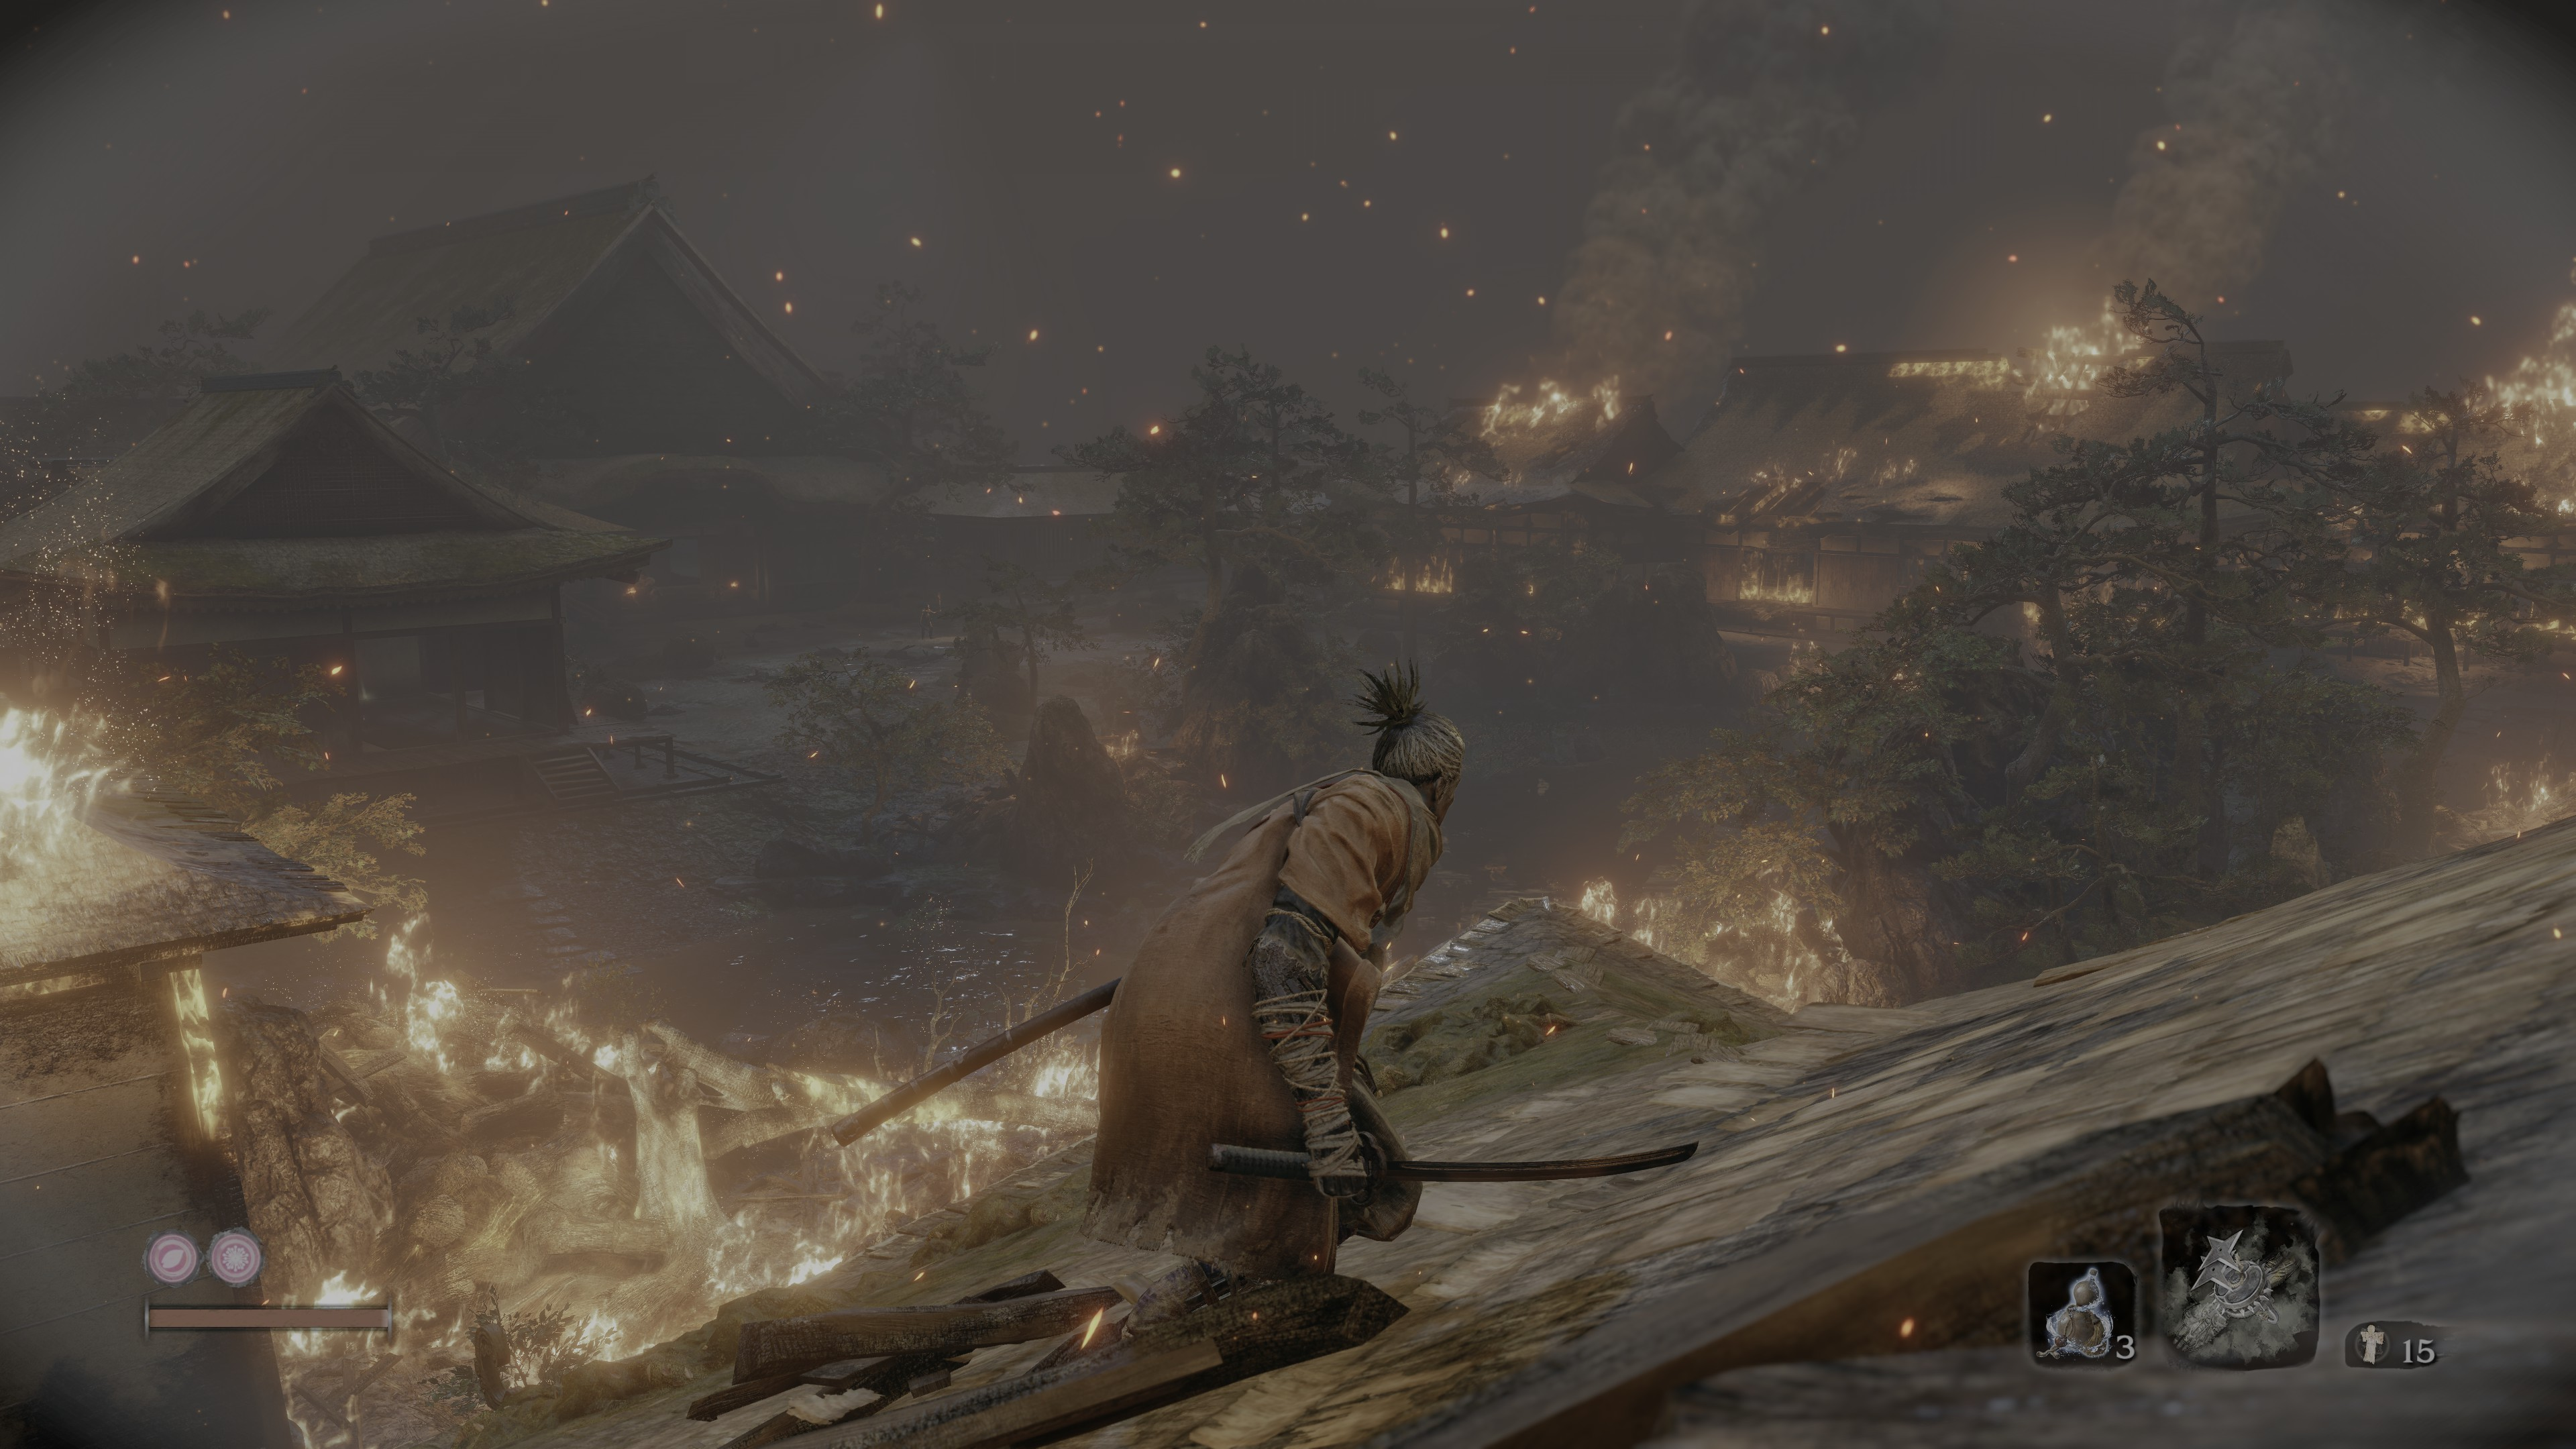 Sekiro: Shadows Die Twice [PC PS4 XONE] CCFCA9C72F2E50278AAAFD82AB4A9B91DF1406A5